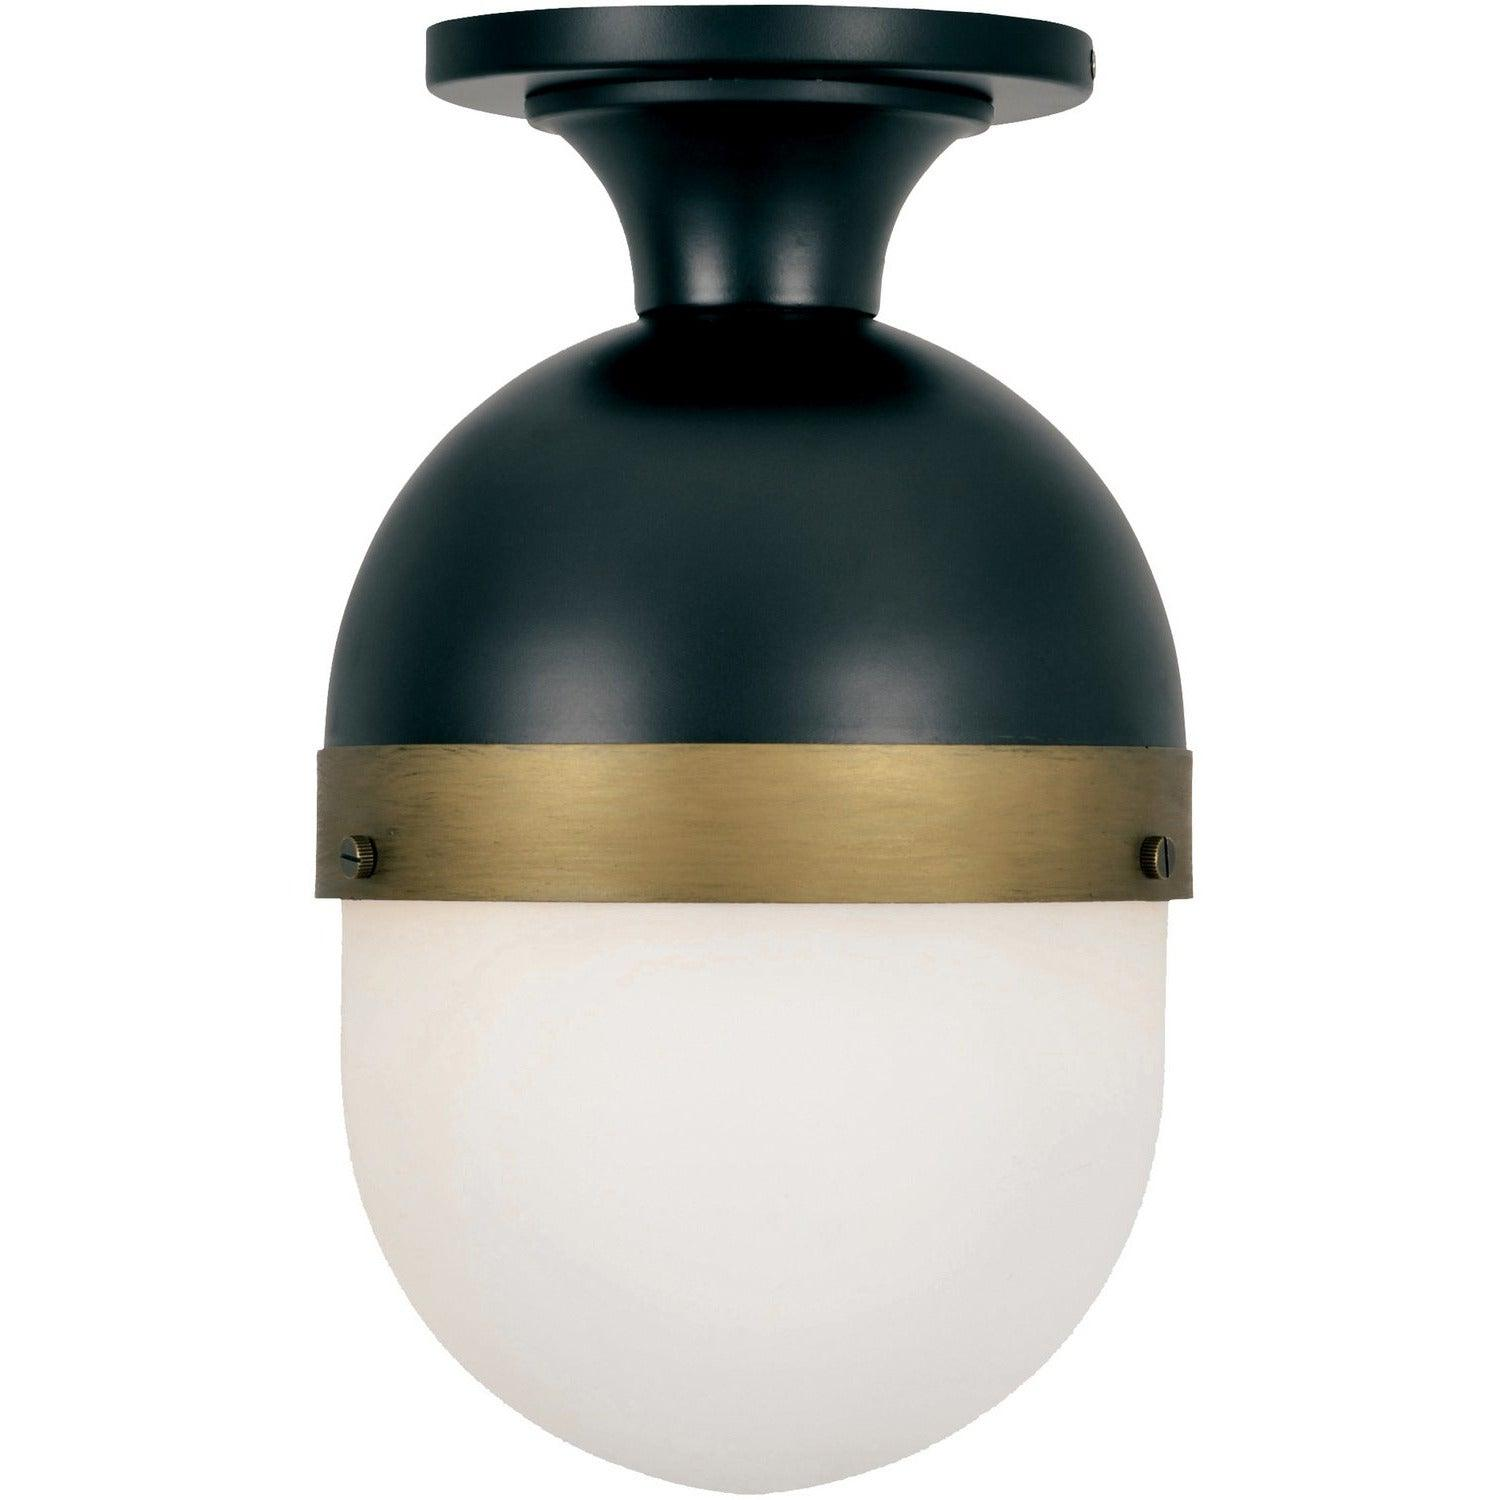 Crystorama - CAP-8500-MK-TG - One Light Outdoor Ceiling Mount - Capsule - Matte Black